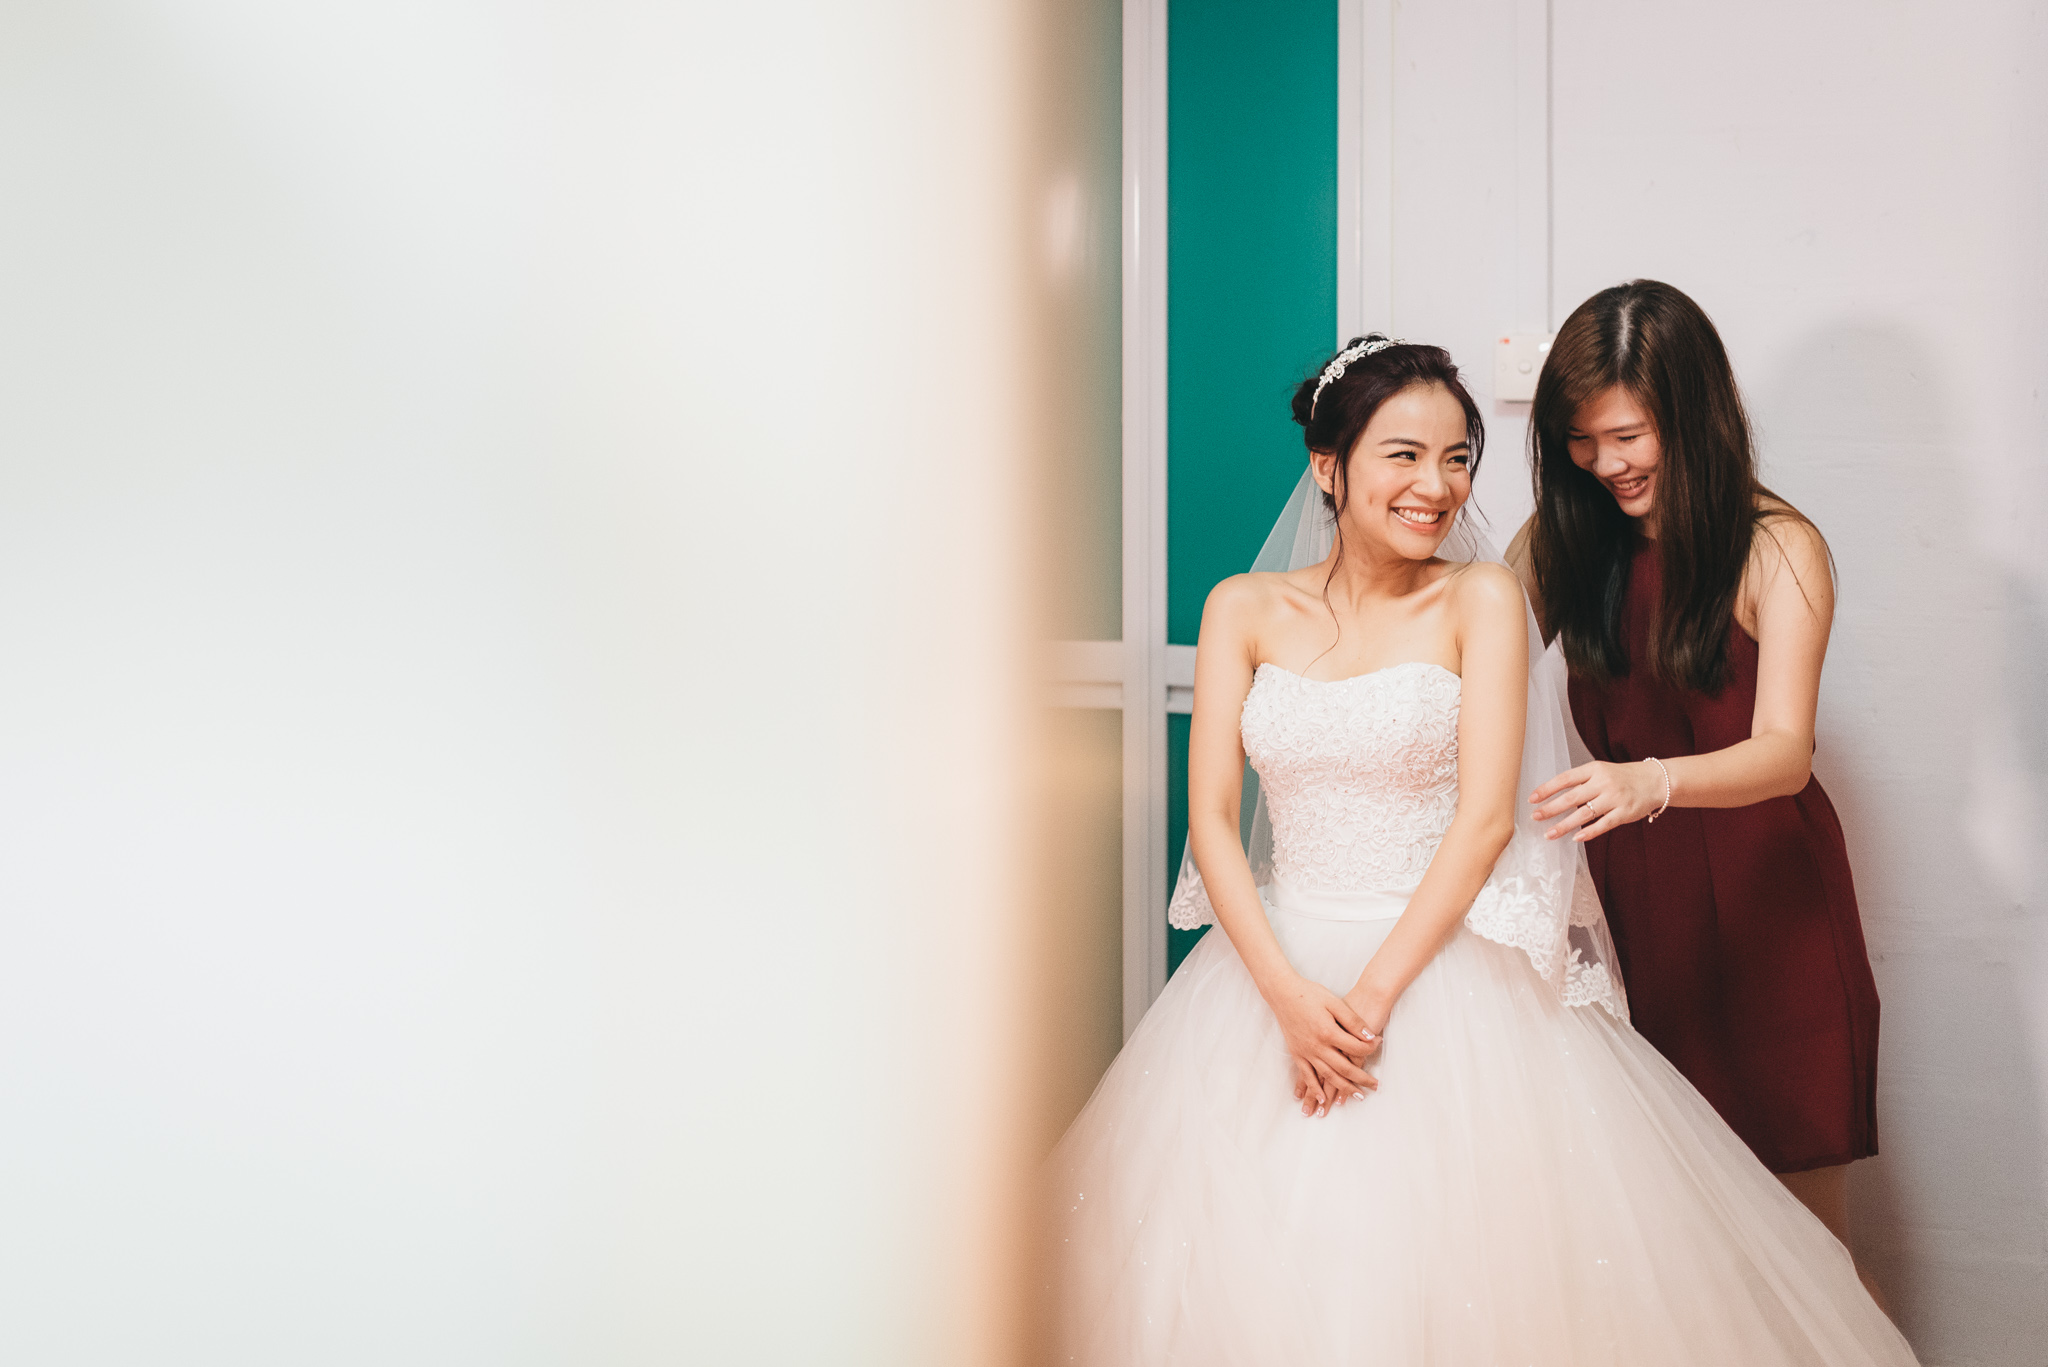 Fiona & Terence Wedding Day Highlights (resized for sharing) - 015.jpg